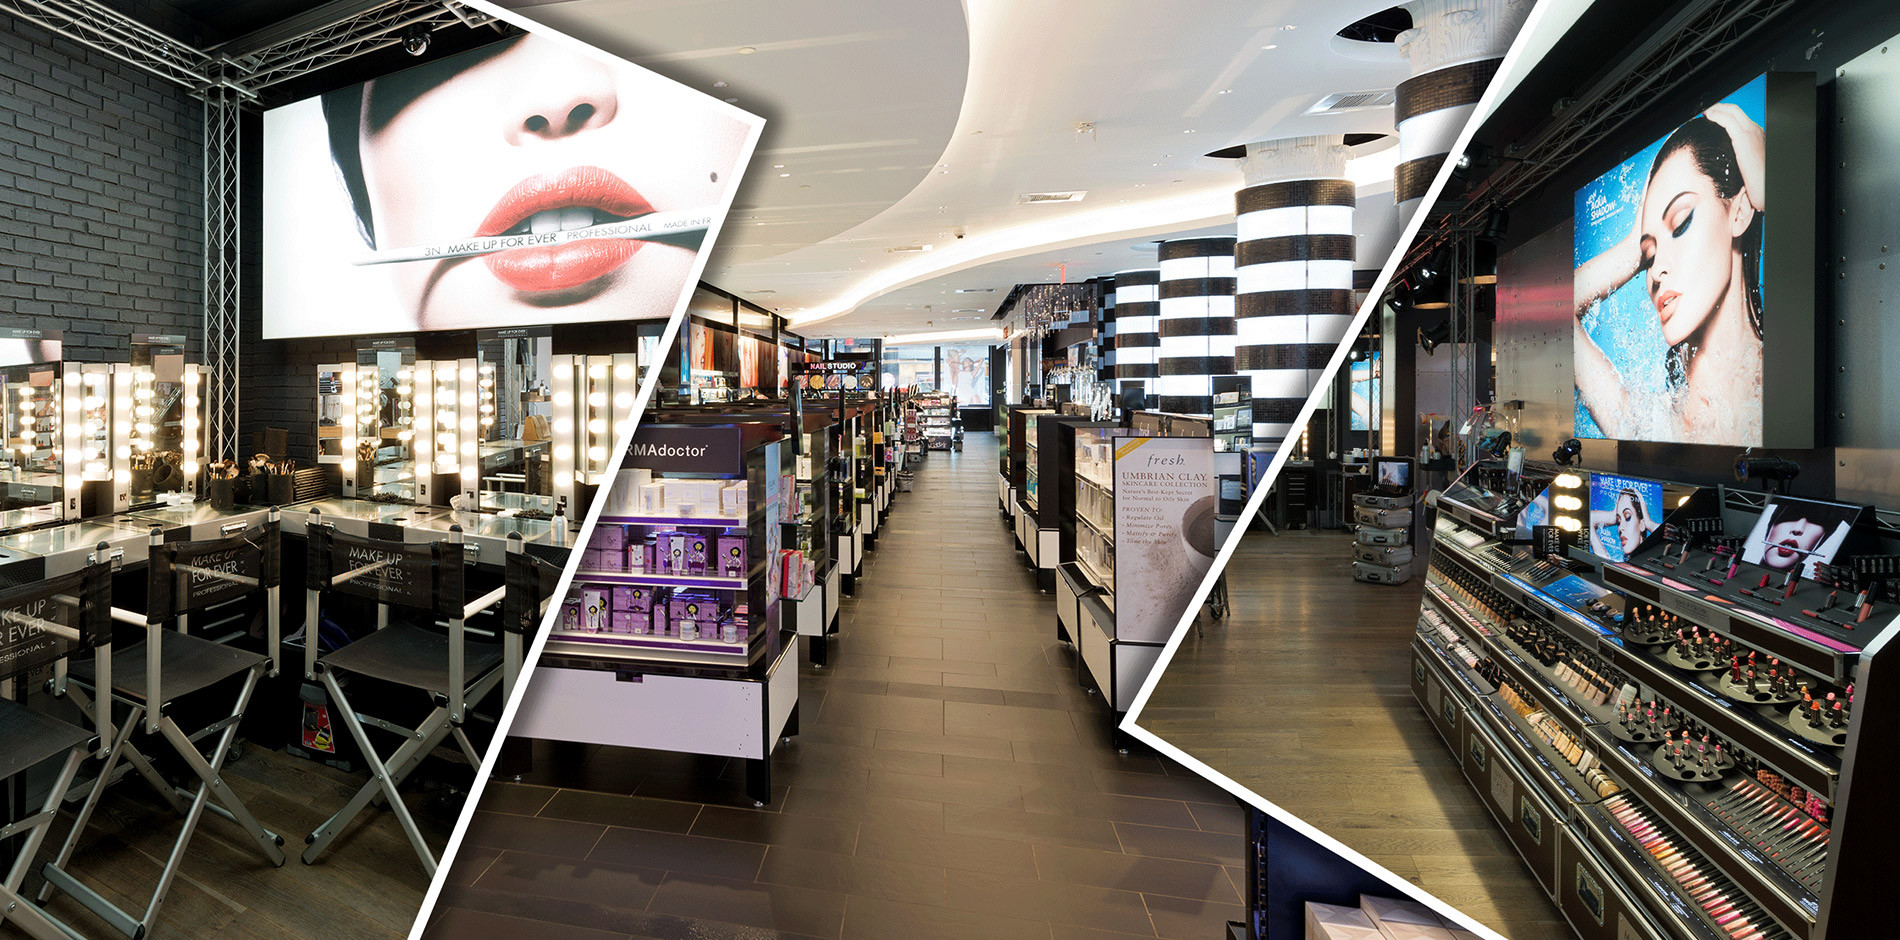 Ceiling Design Retail What S Next In Retail New Markets Tenant Offerings Technology